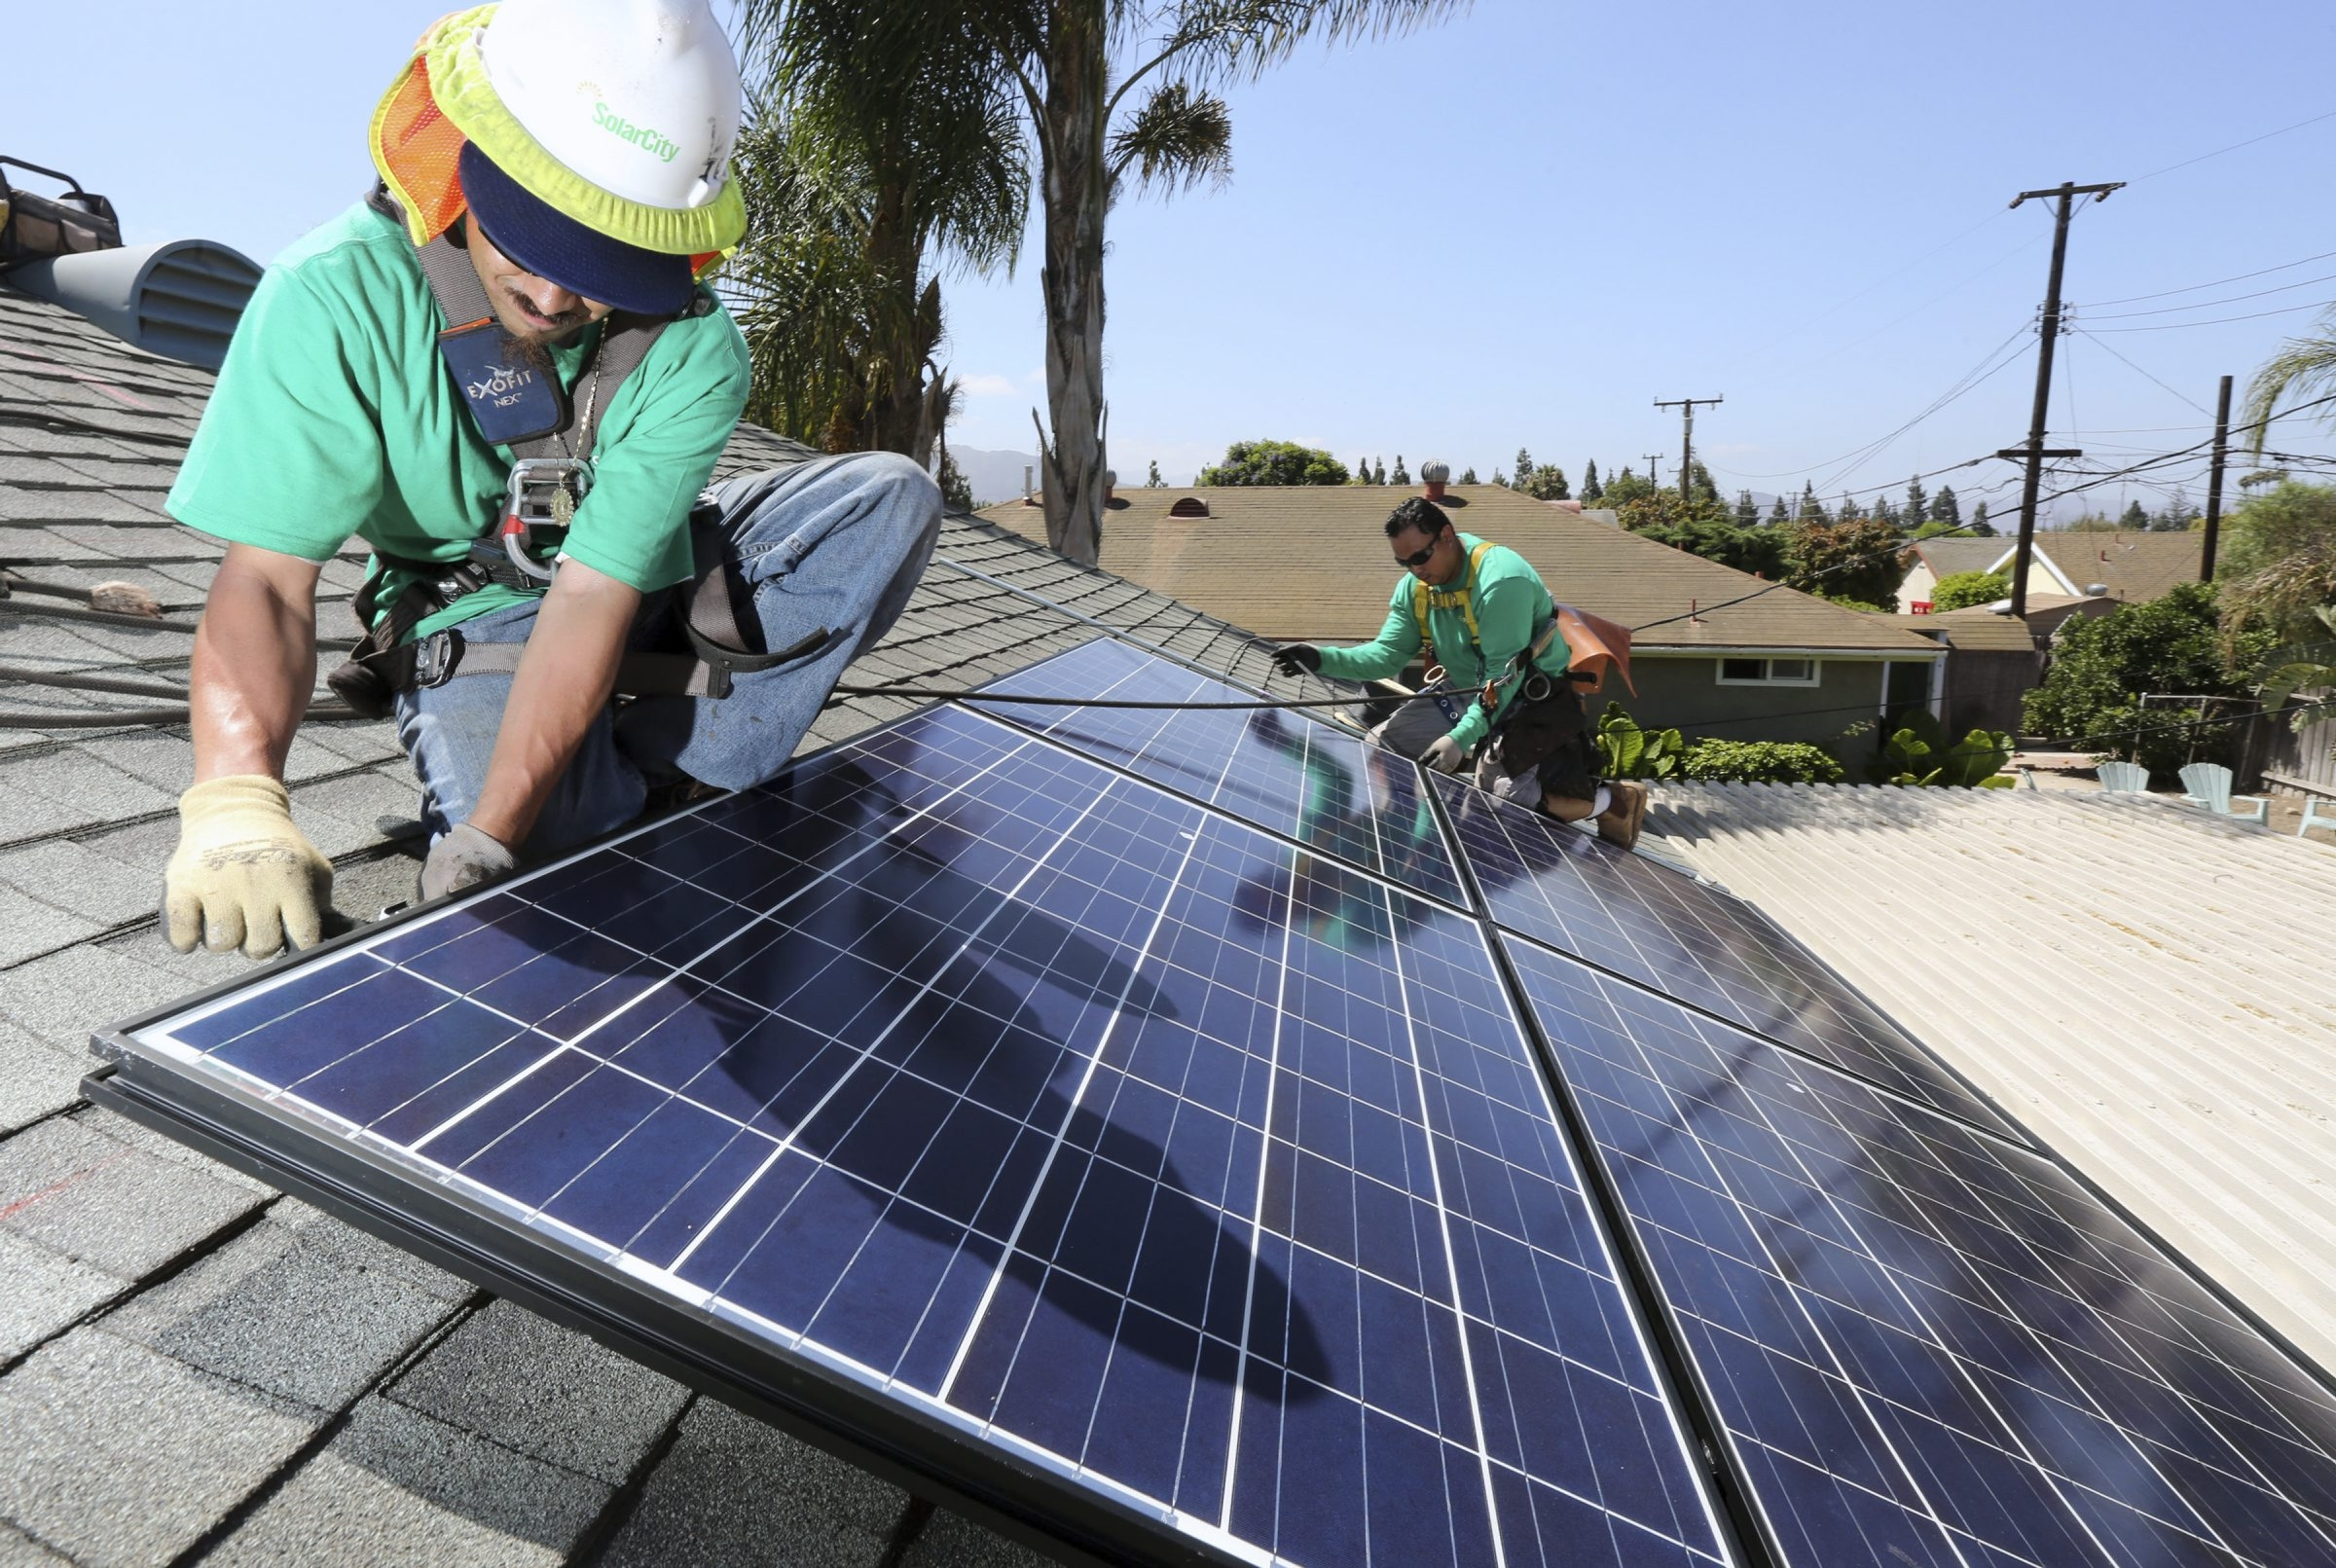 Workers from SolarCity install solar panels on a home in Camarillo, Calif., (New York Times)